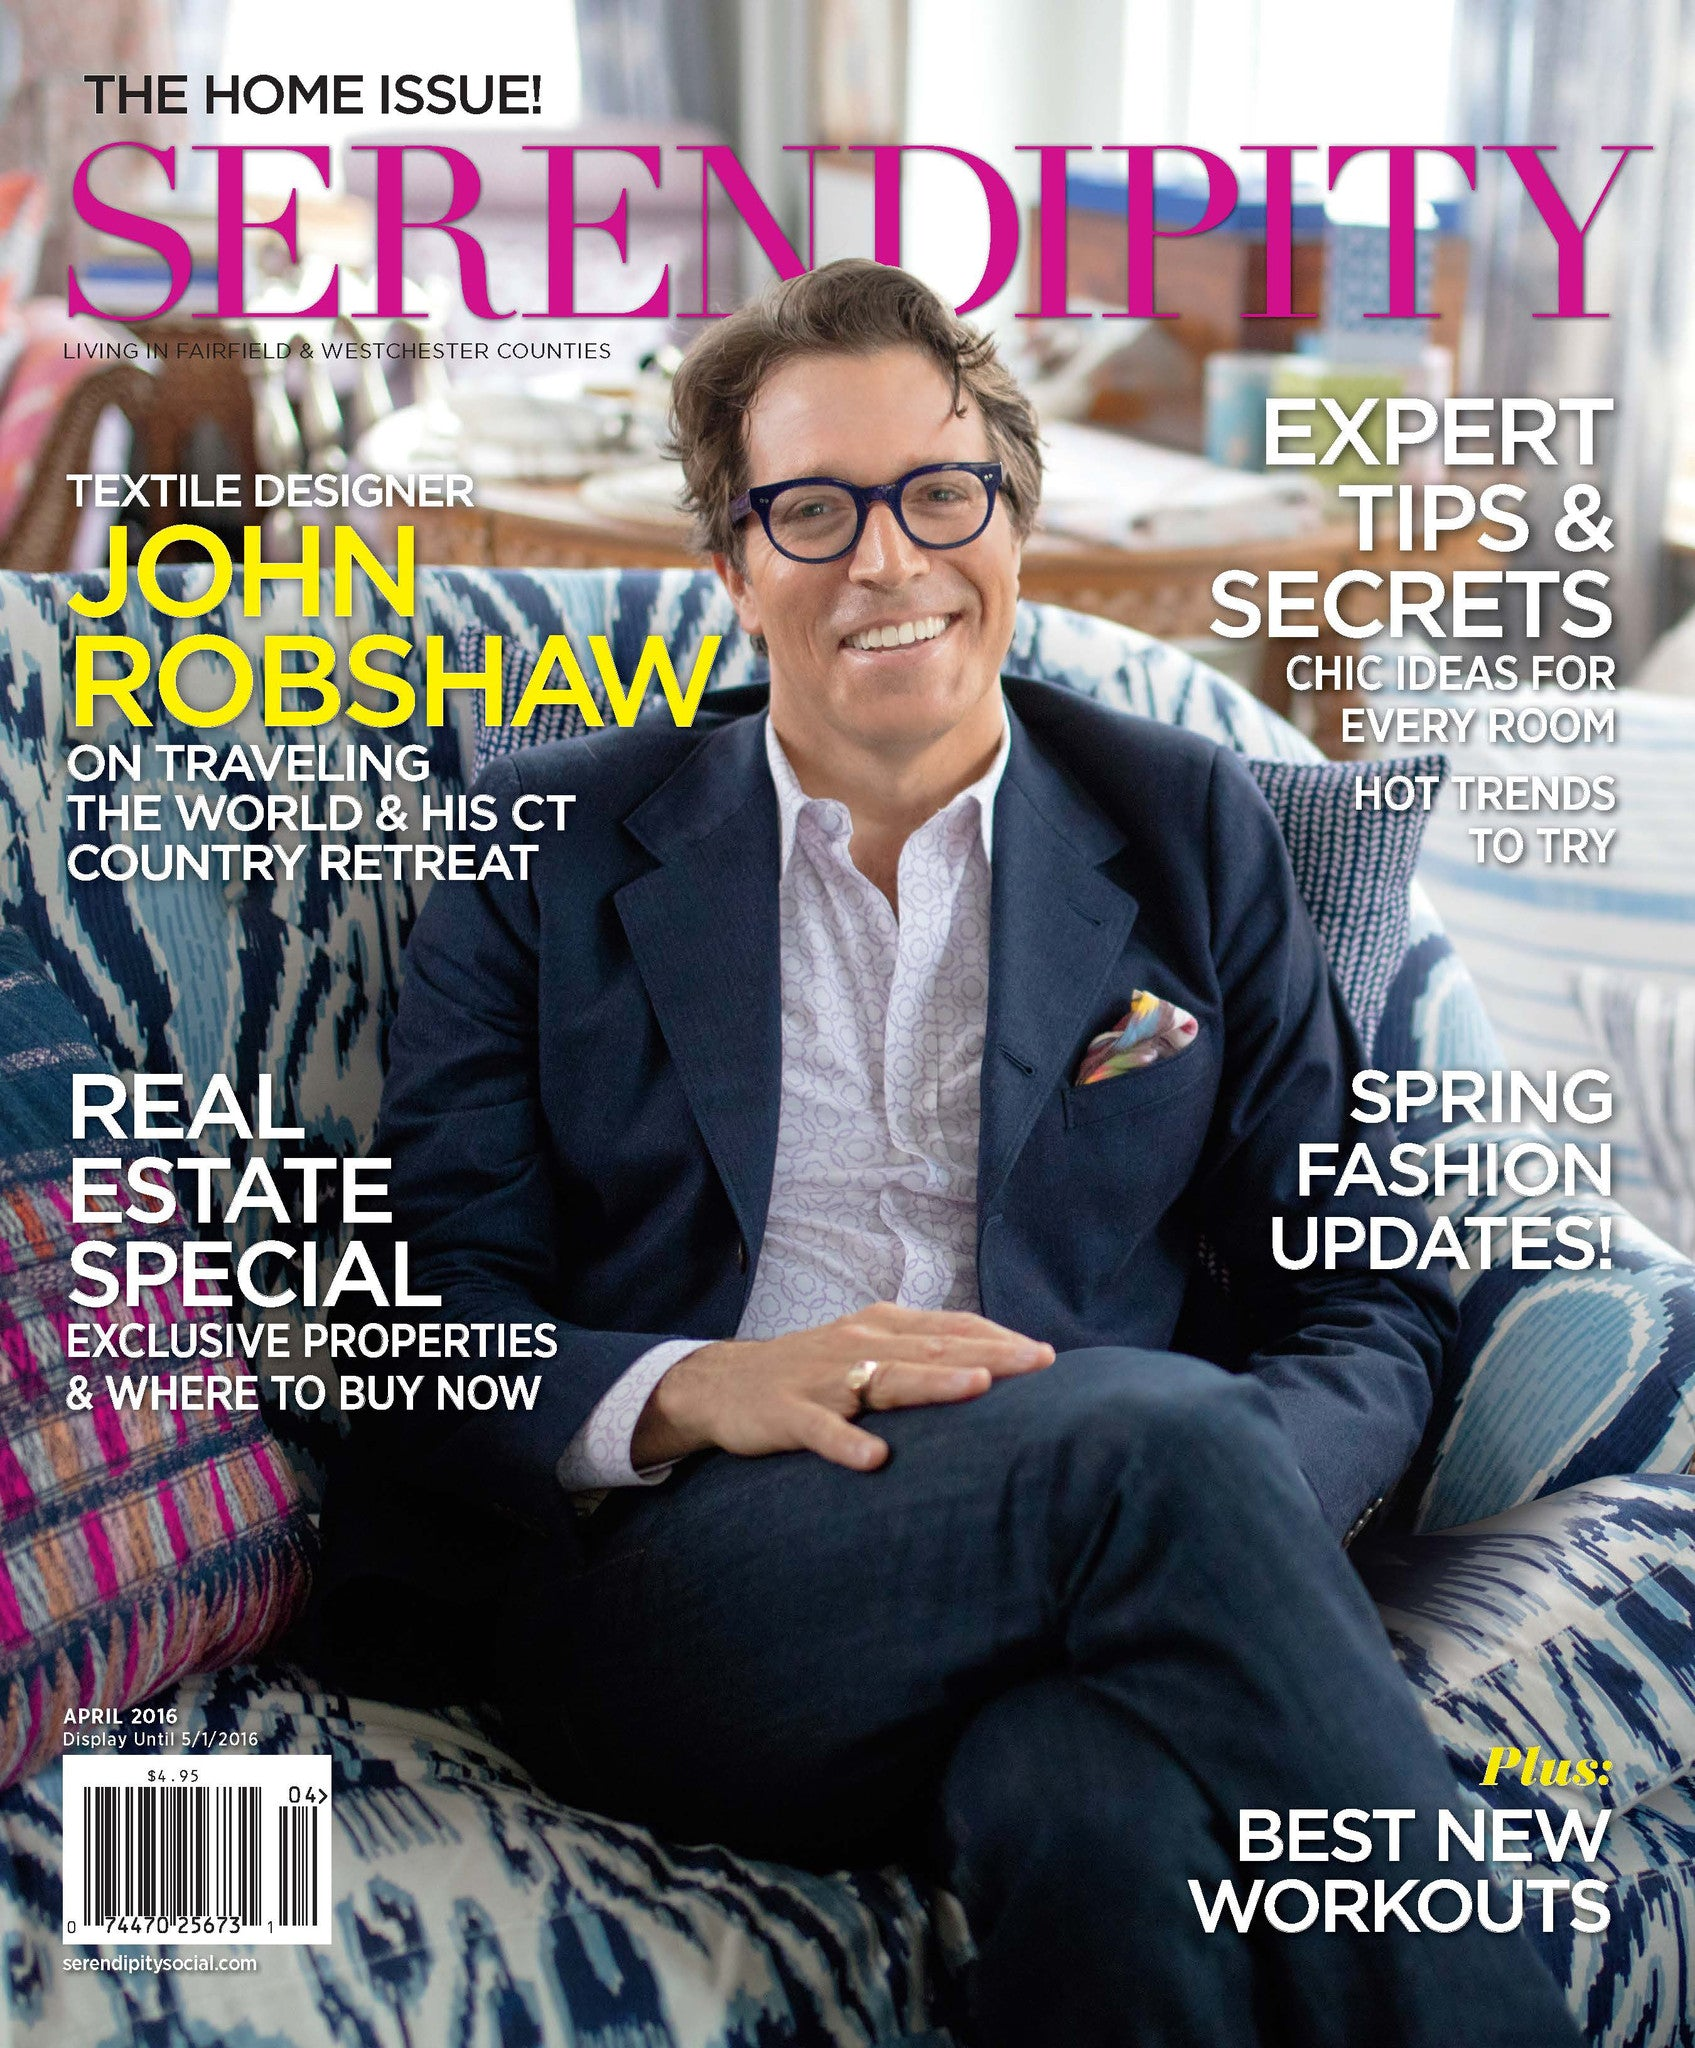 Serendipity | April 2016 | The Home Issue